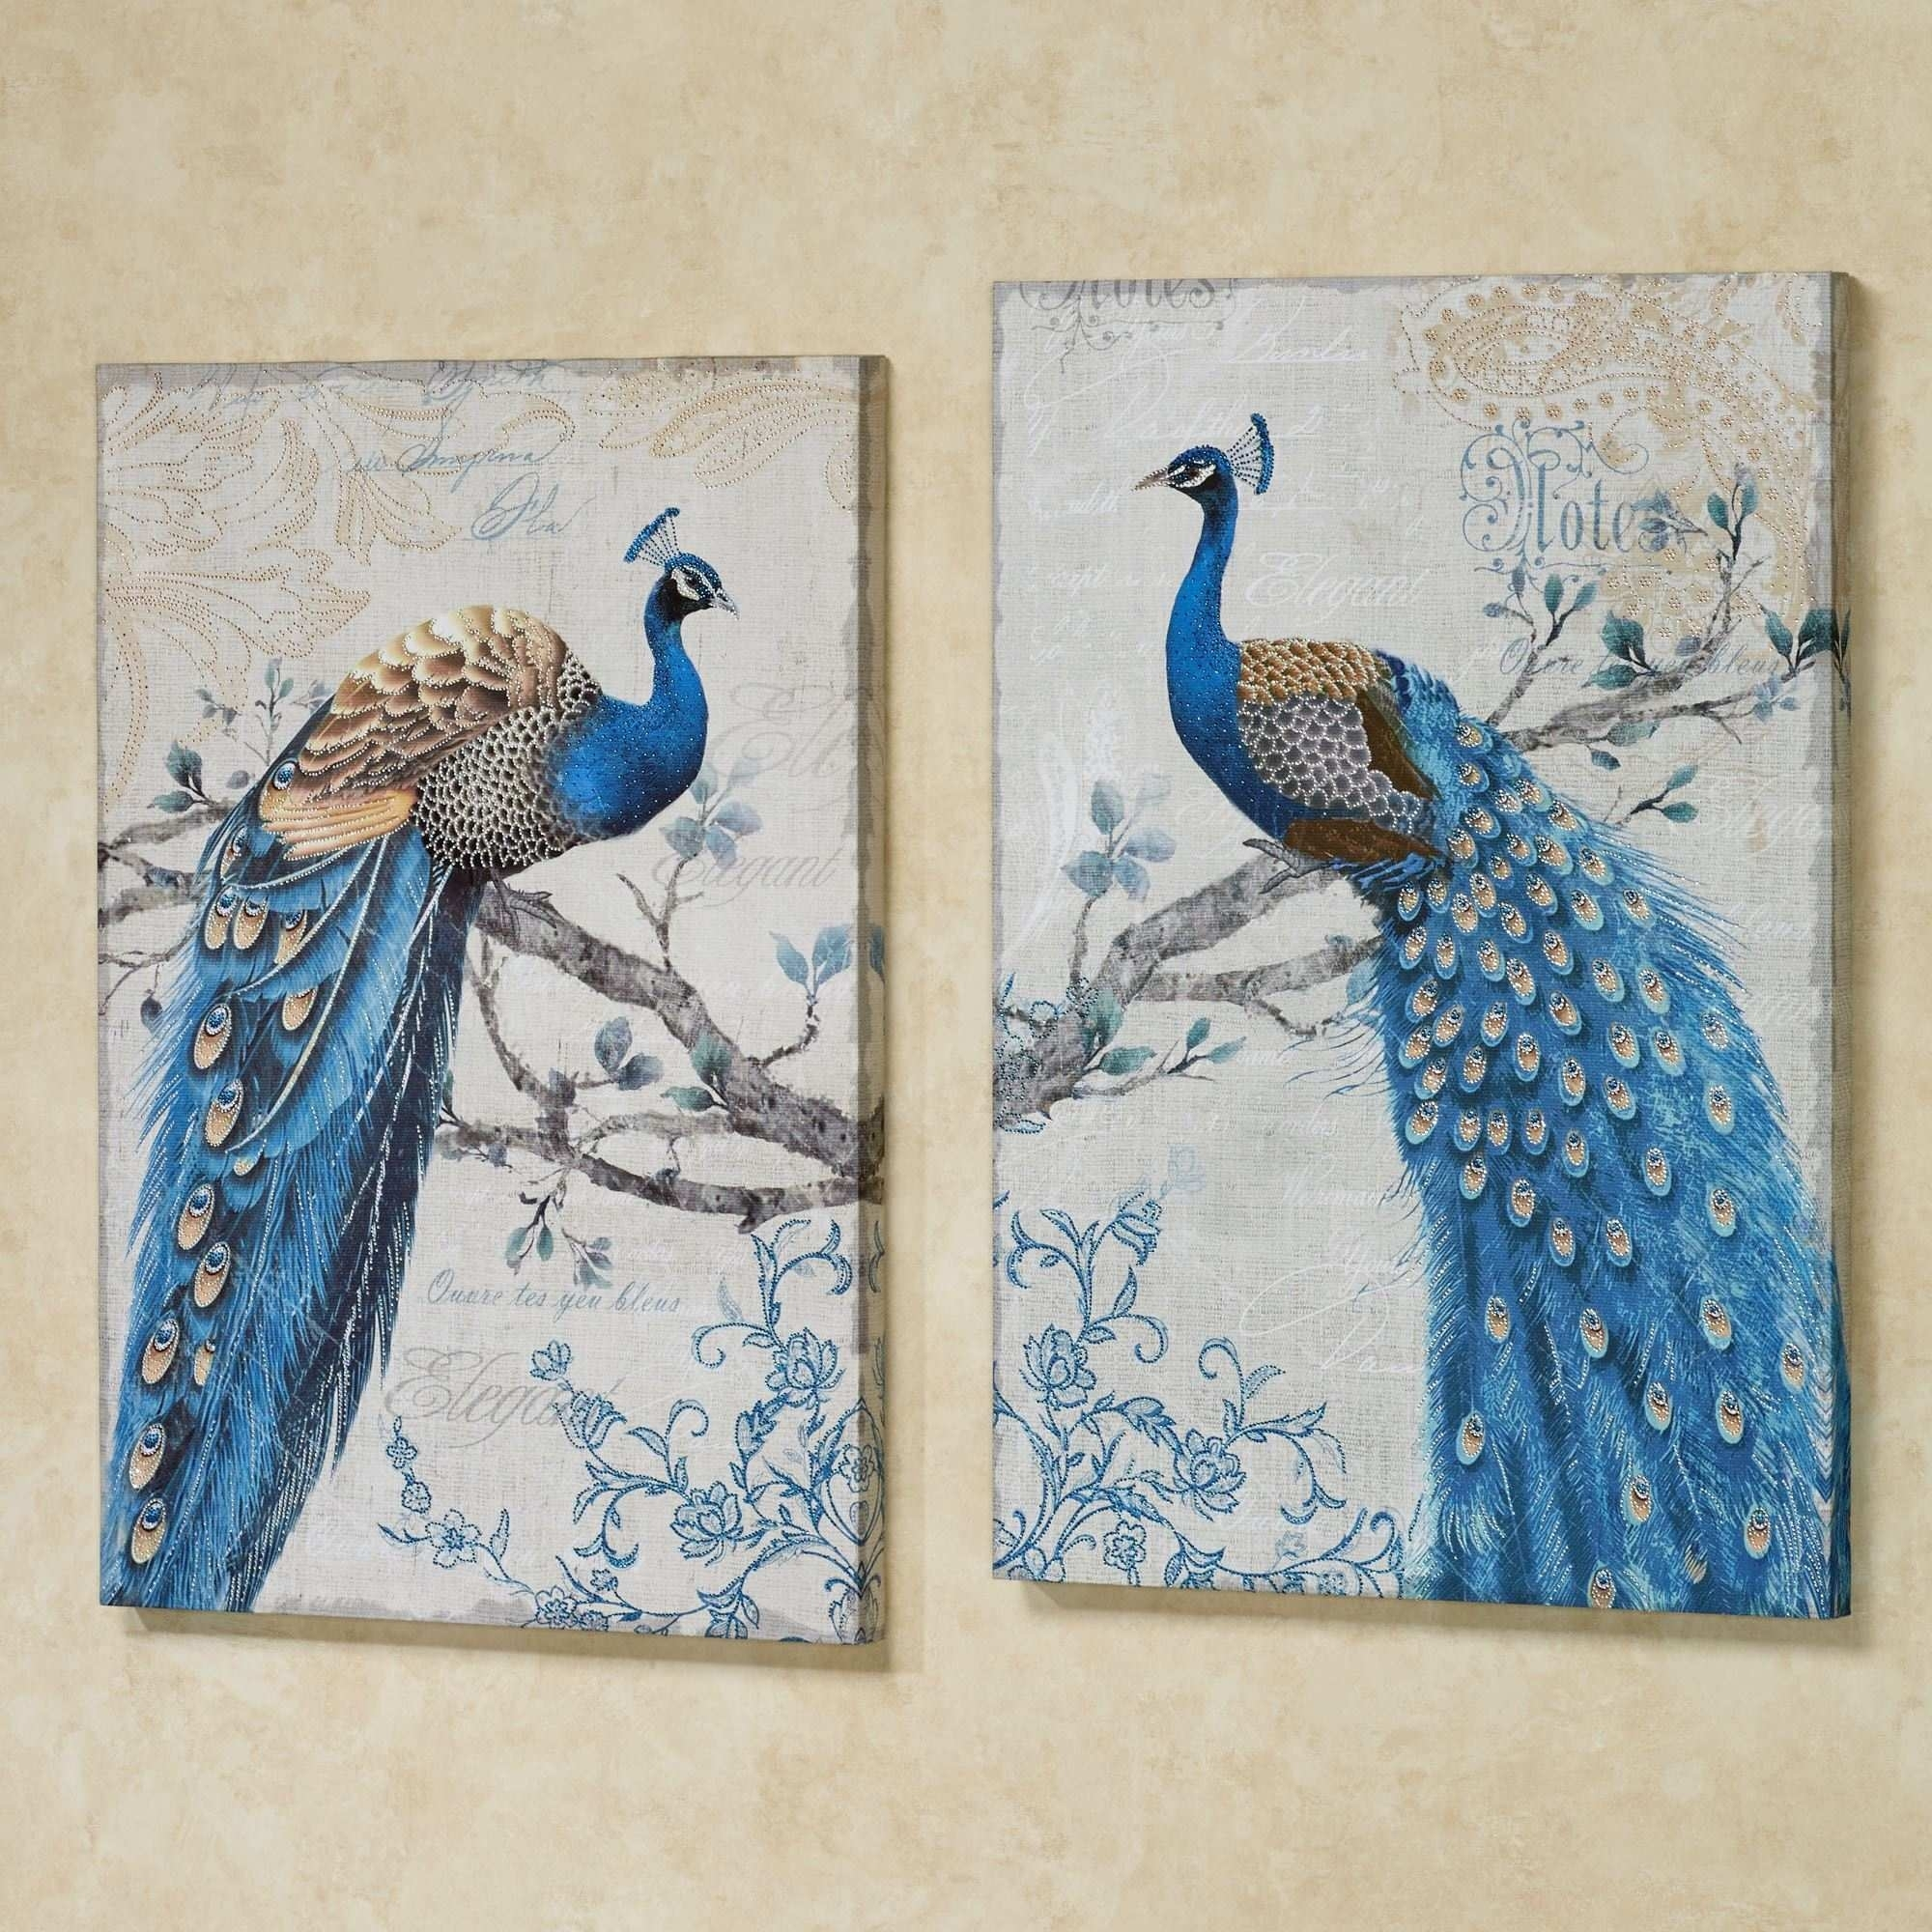 Peacock Canvas Painting Luxury Magnificent Peacock Giclee Canvas Regarding Peacock Wall Art (View 6 of 20)